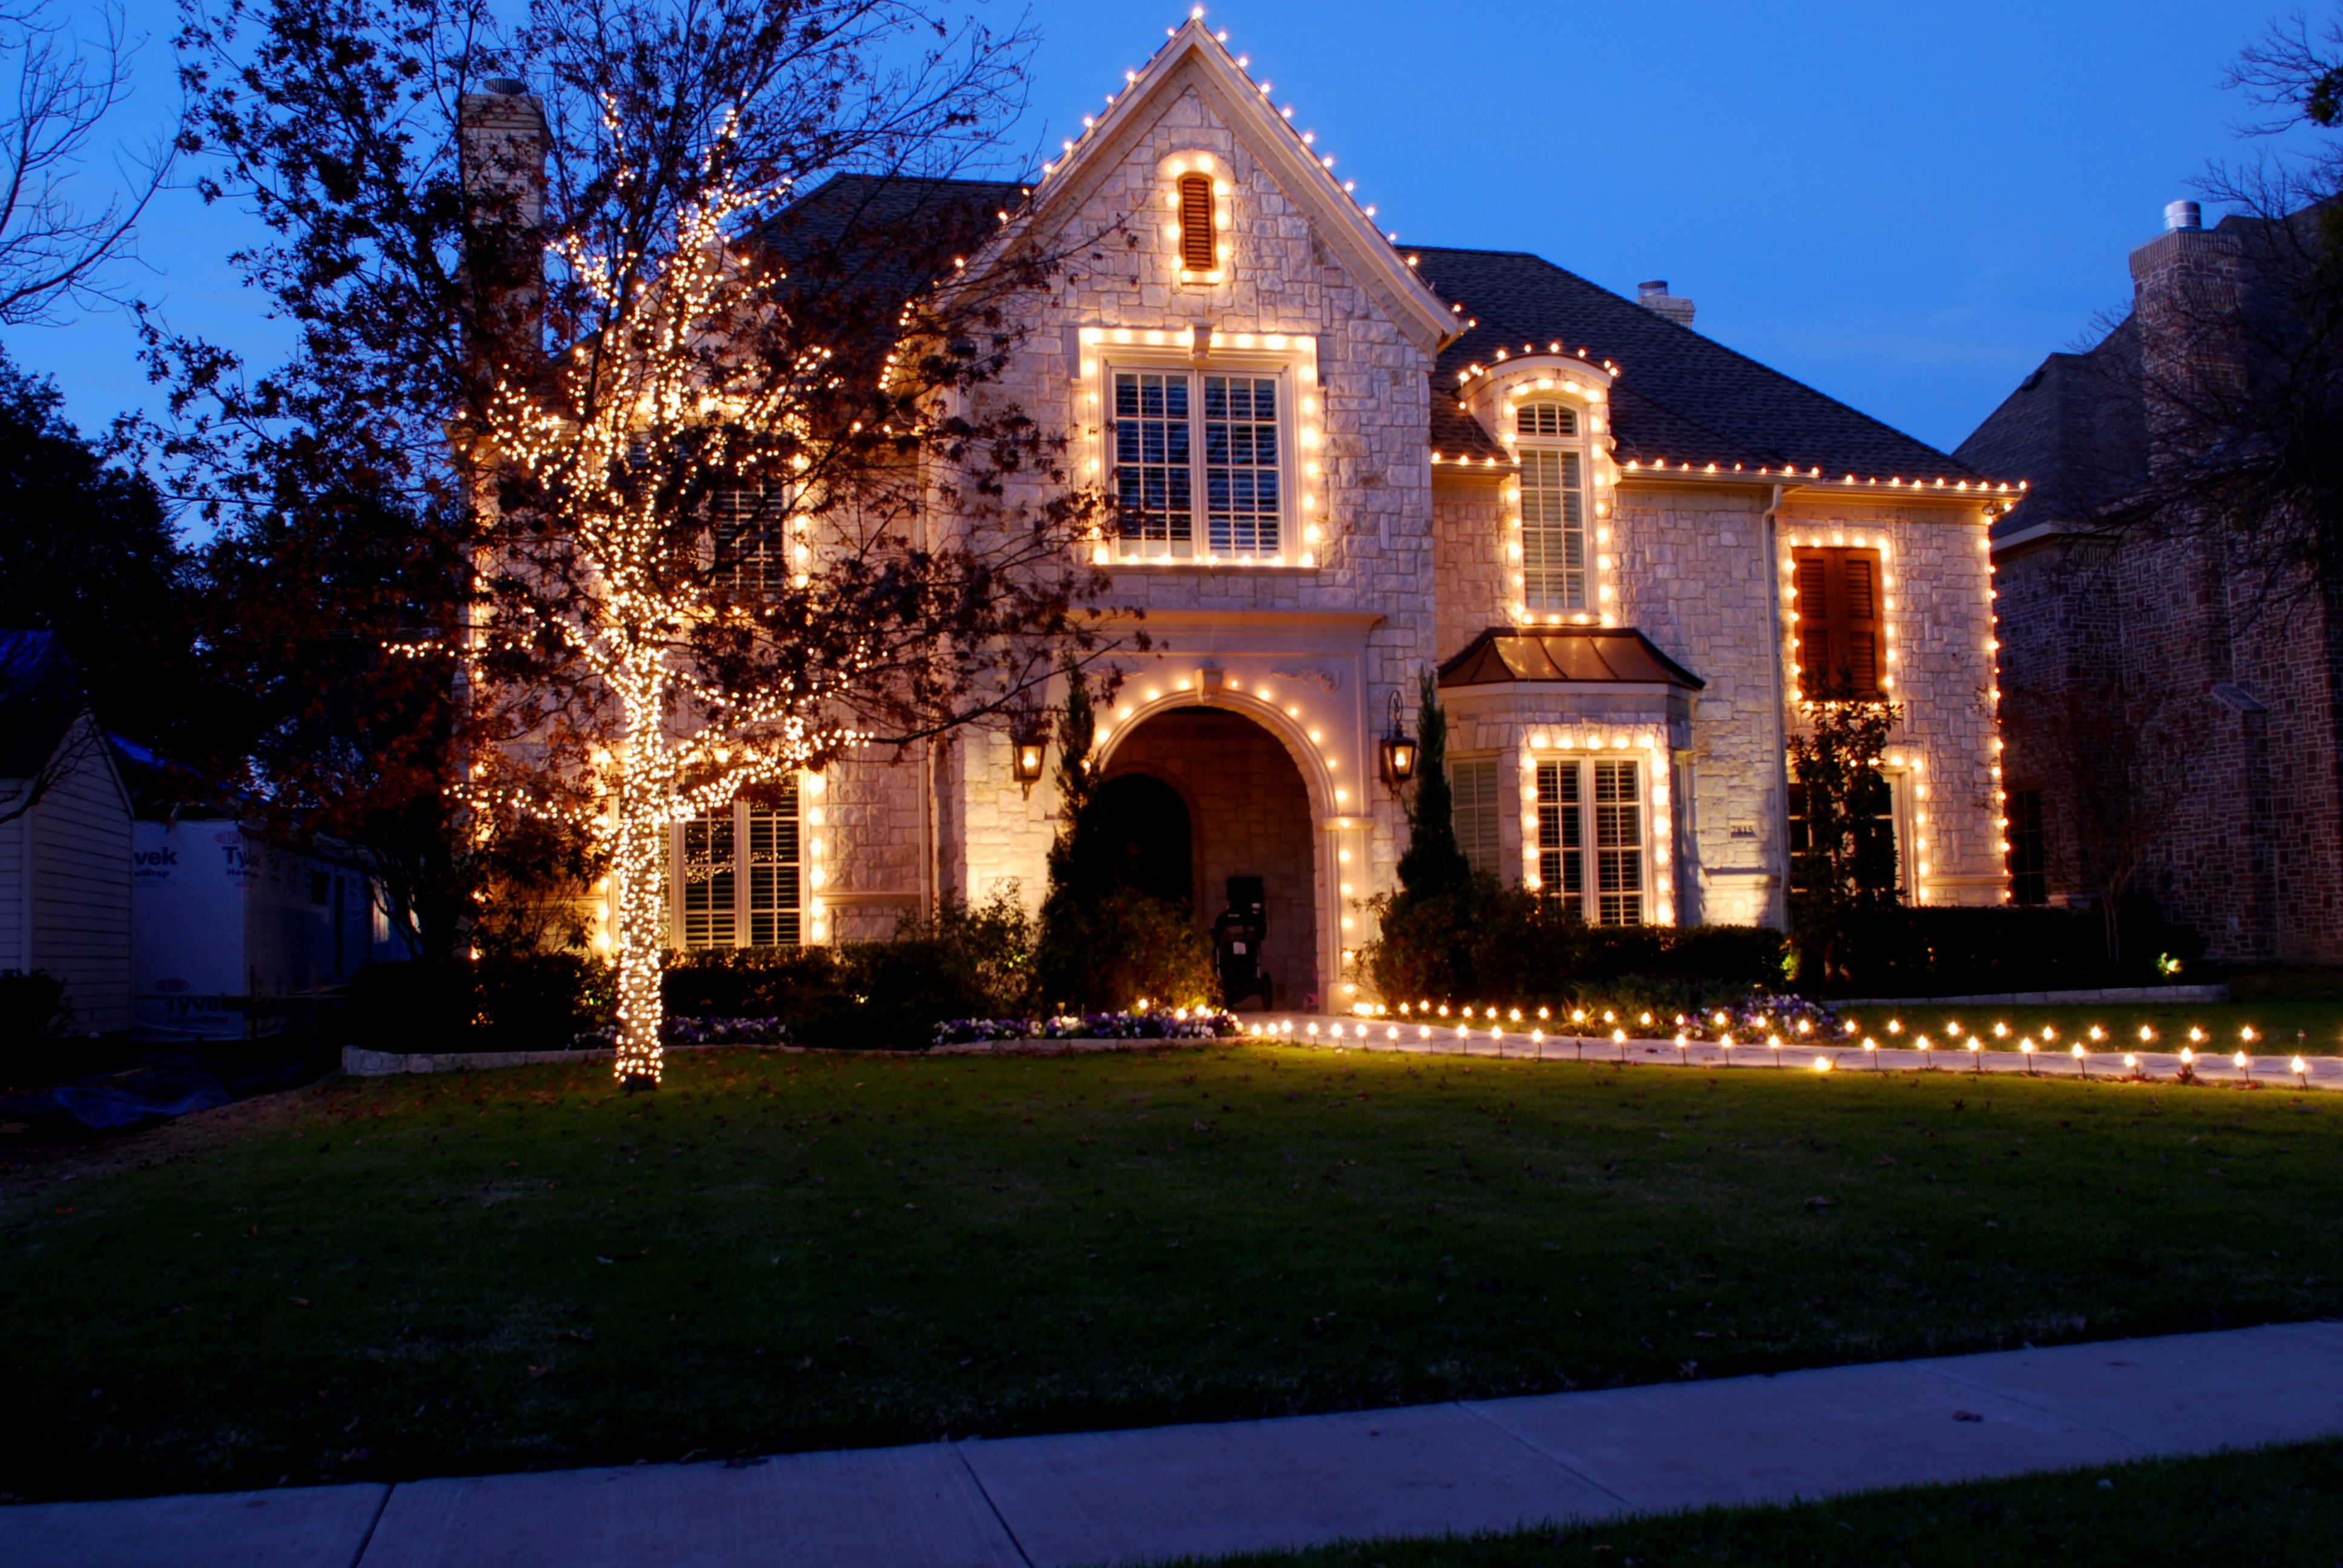 Best way to hang christmas lights - 17 Best Images About Holiday Decor On Pinterest Outdoor Christmas Roof Light And How To Design